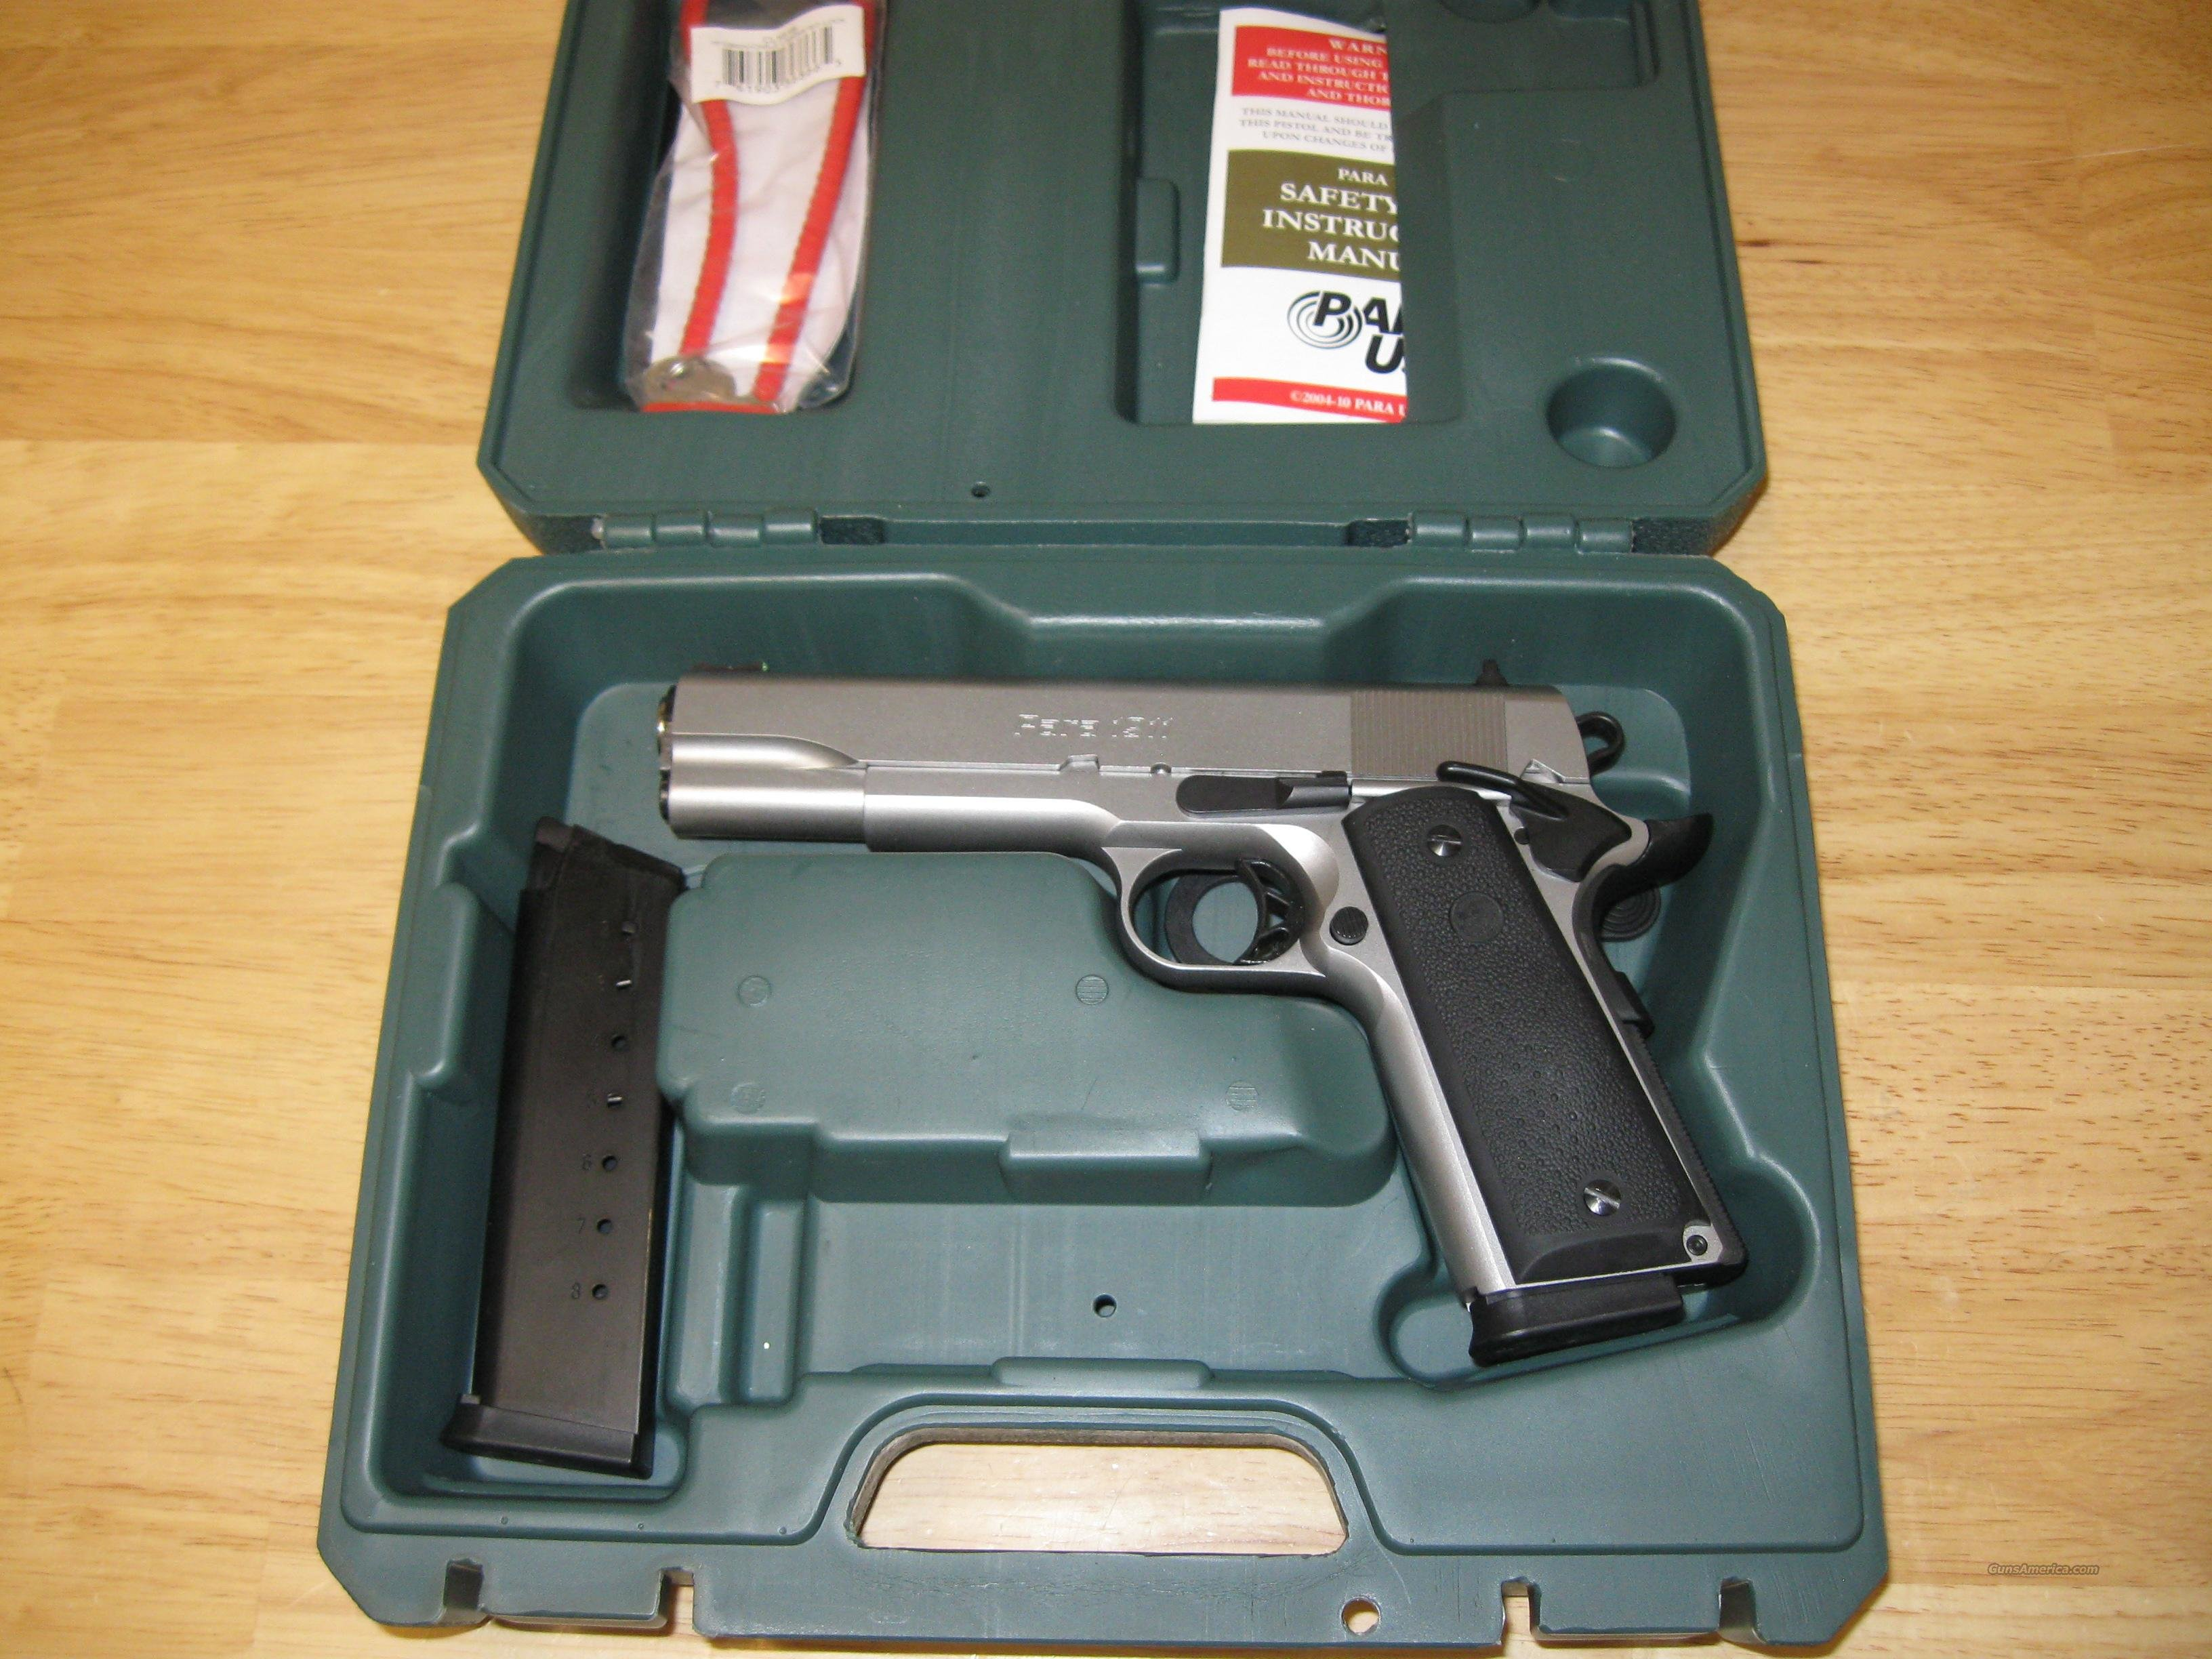 Para 1911 Expert Pistol, 45 ACP, 5 in, Checkered Black Grip, Stainless Finish, 8 Rd  Guns > Pistols > Para Ordnance Pistols